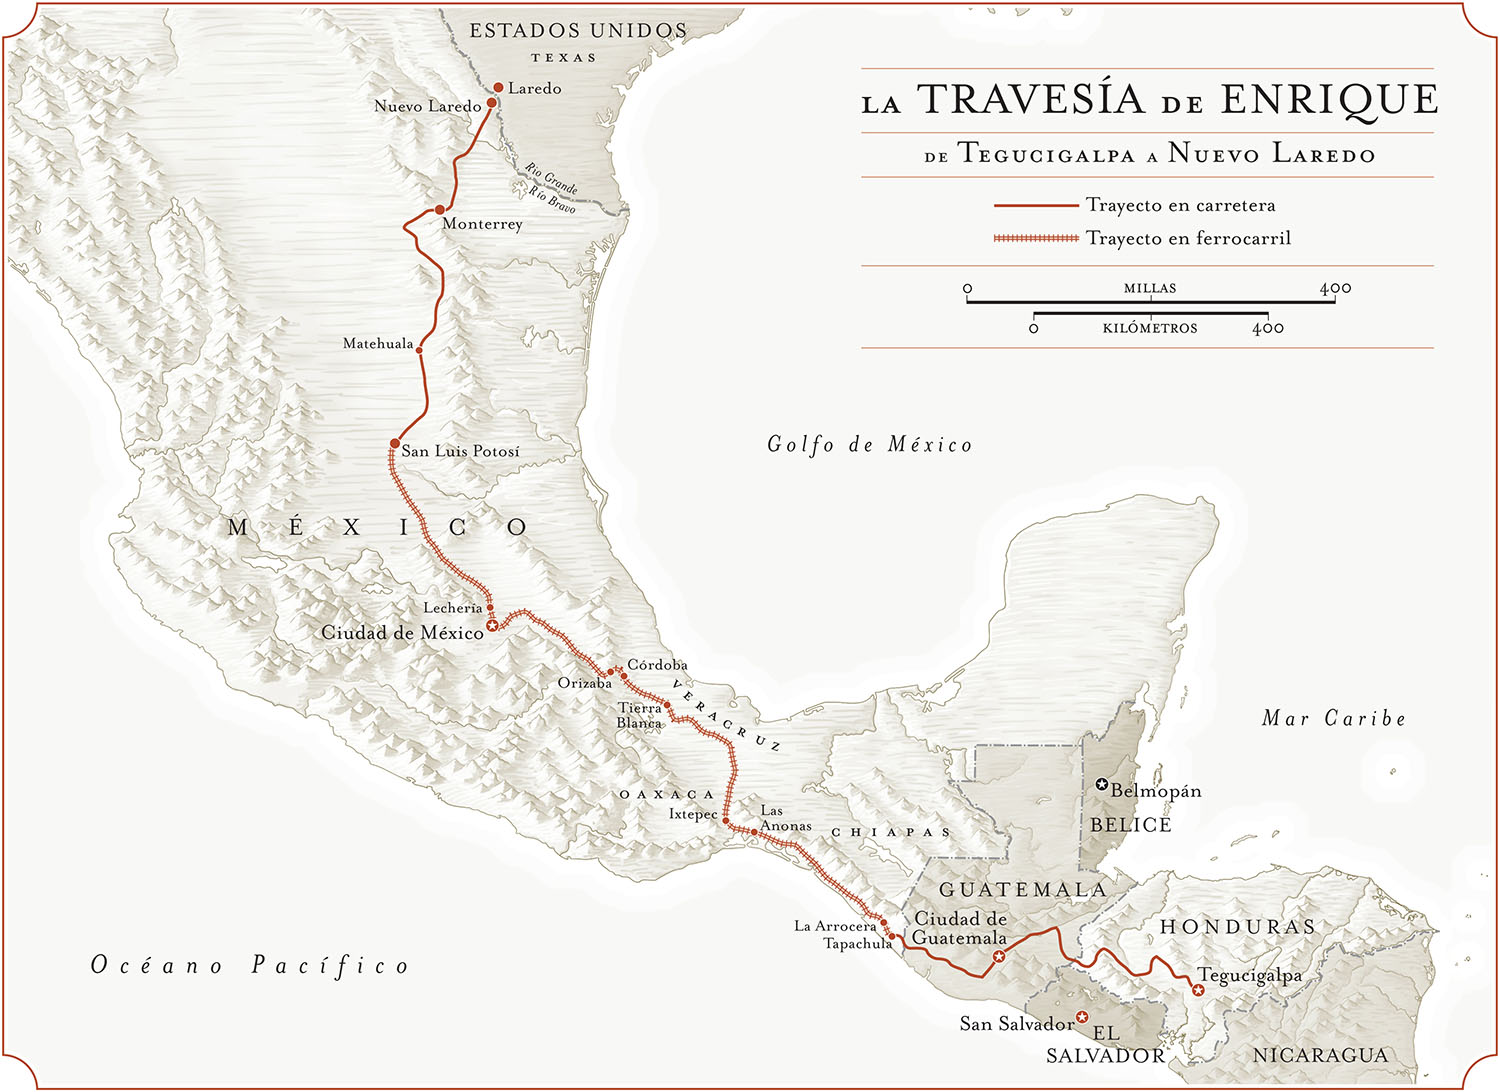 From   Enrique's Journey: The Story of a Boy's Dangerous Odyssey to Reunite with His Mother,      by Sonia Nazario  (Random House, 2006) .  Map Copyright © David Lindroth Inc.